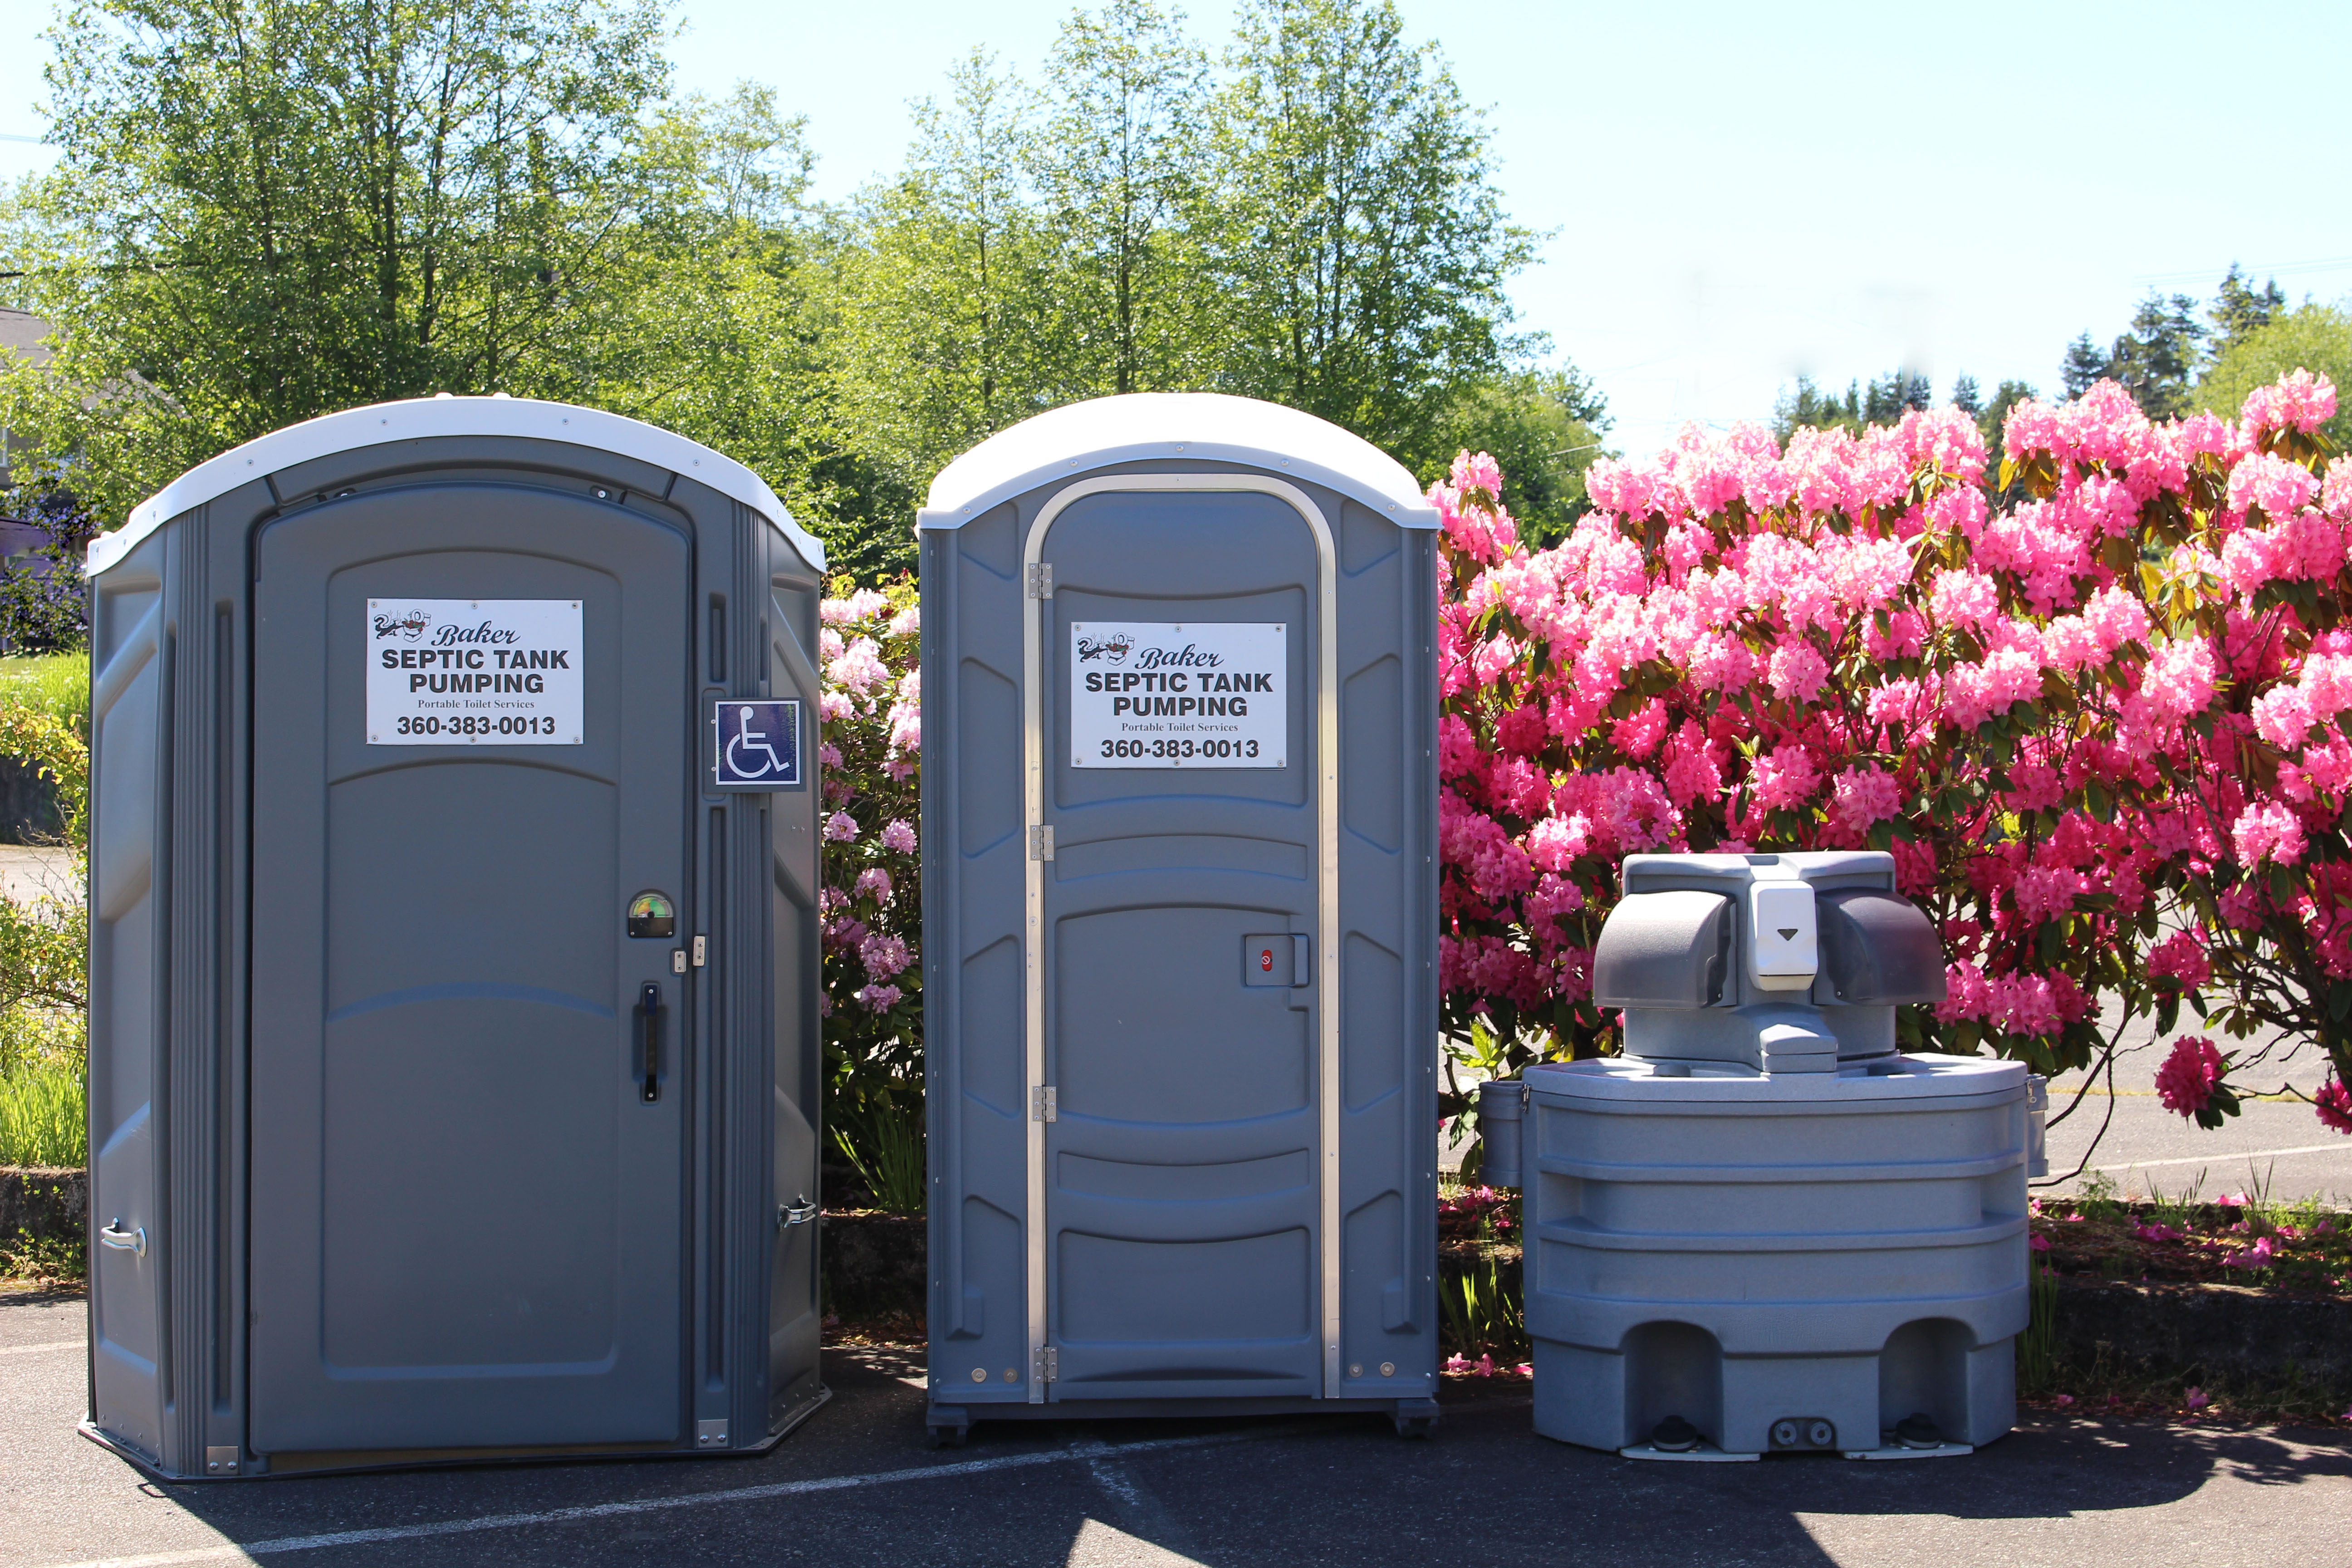 rent a potty toilet superior porta portable falls in example granite rentals for ideas bathroom complete